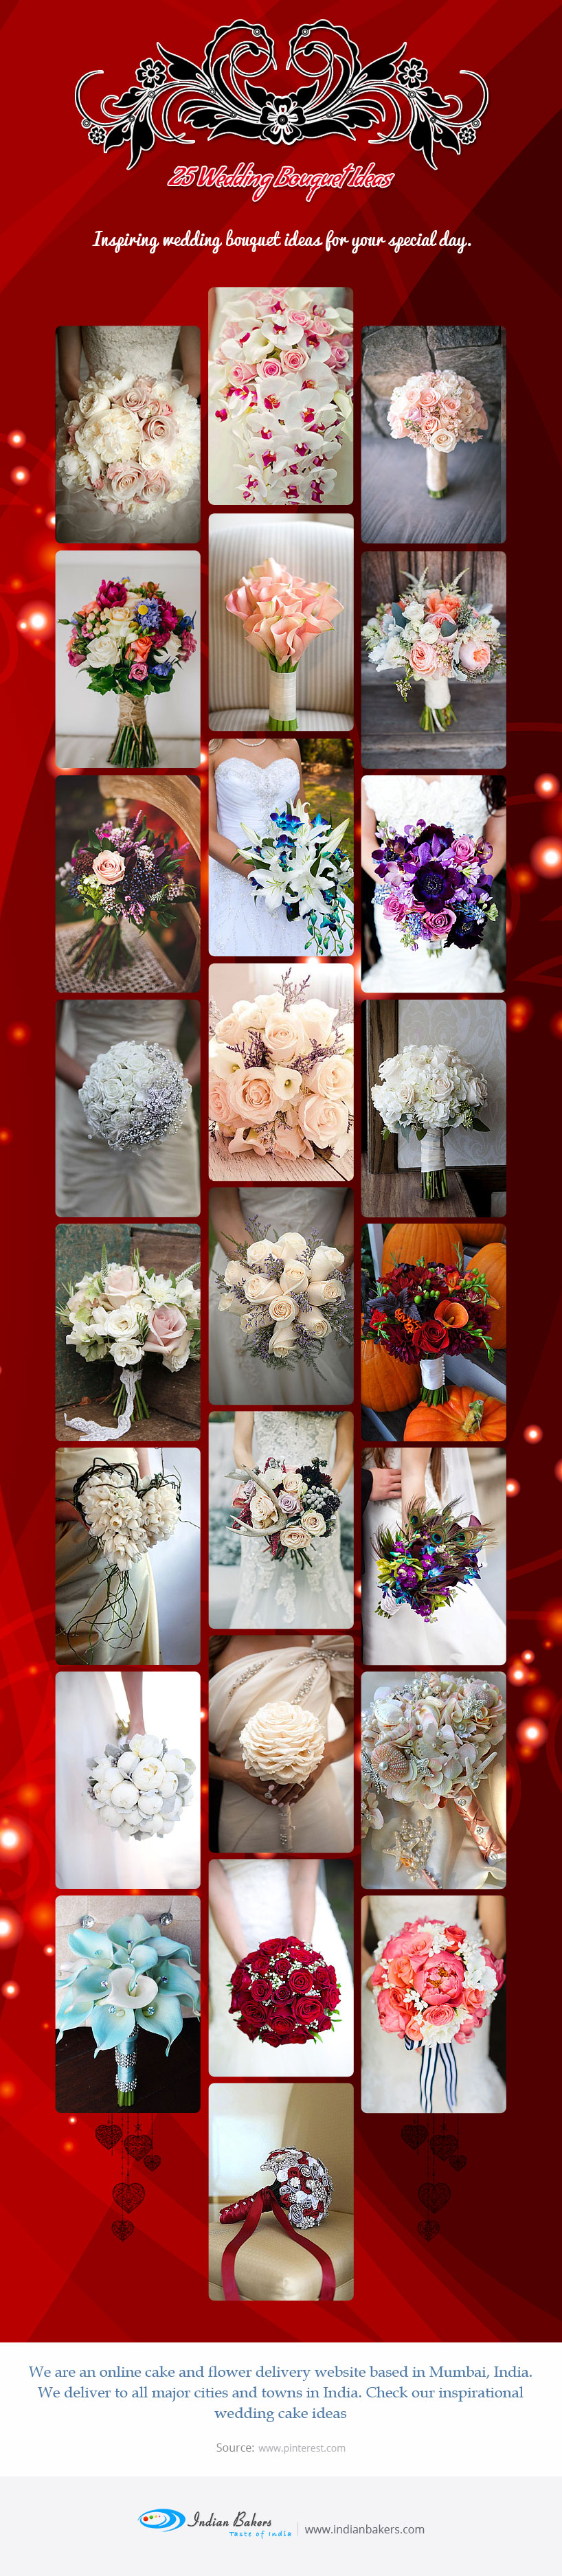 25 Amazing Wedding Flowers Bouquets Ideas Visual